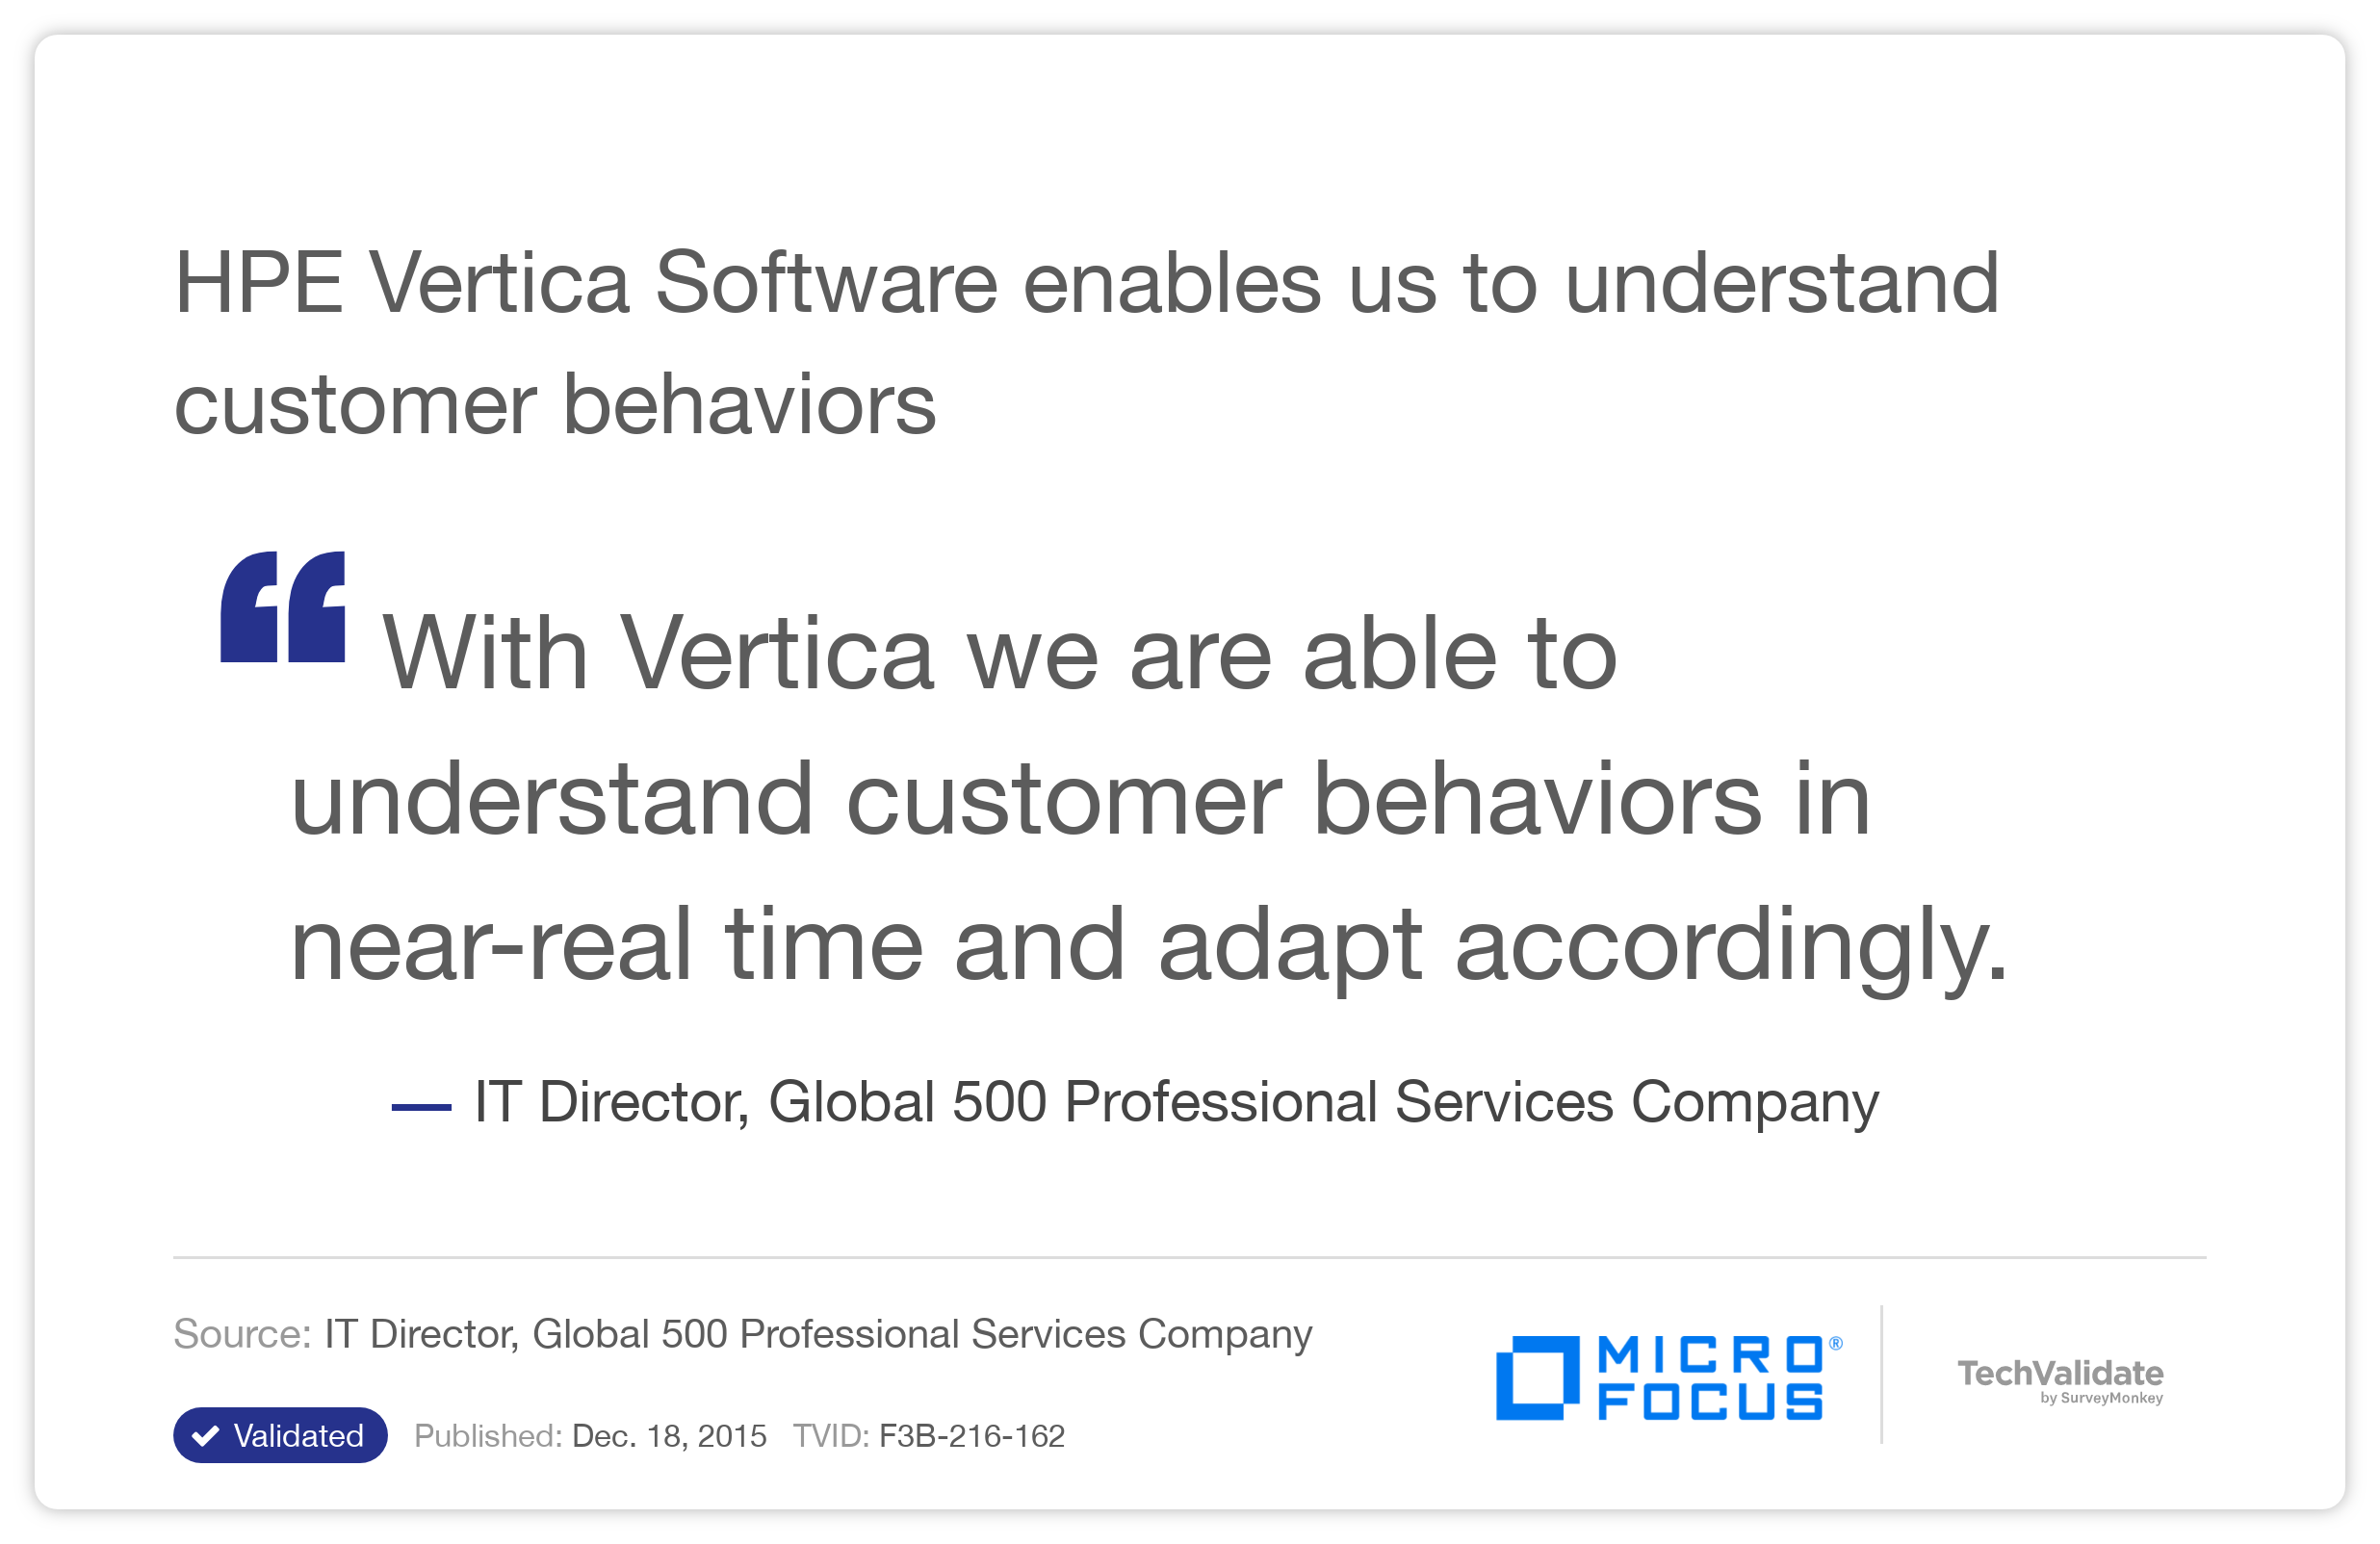 HPE Vertica Software enables us to understand customer behaviors